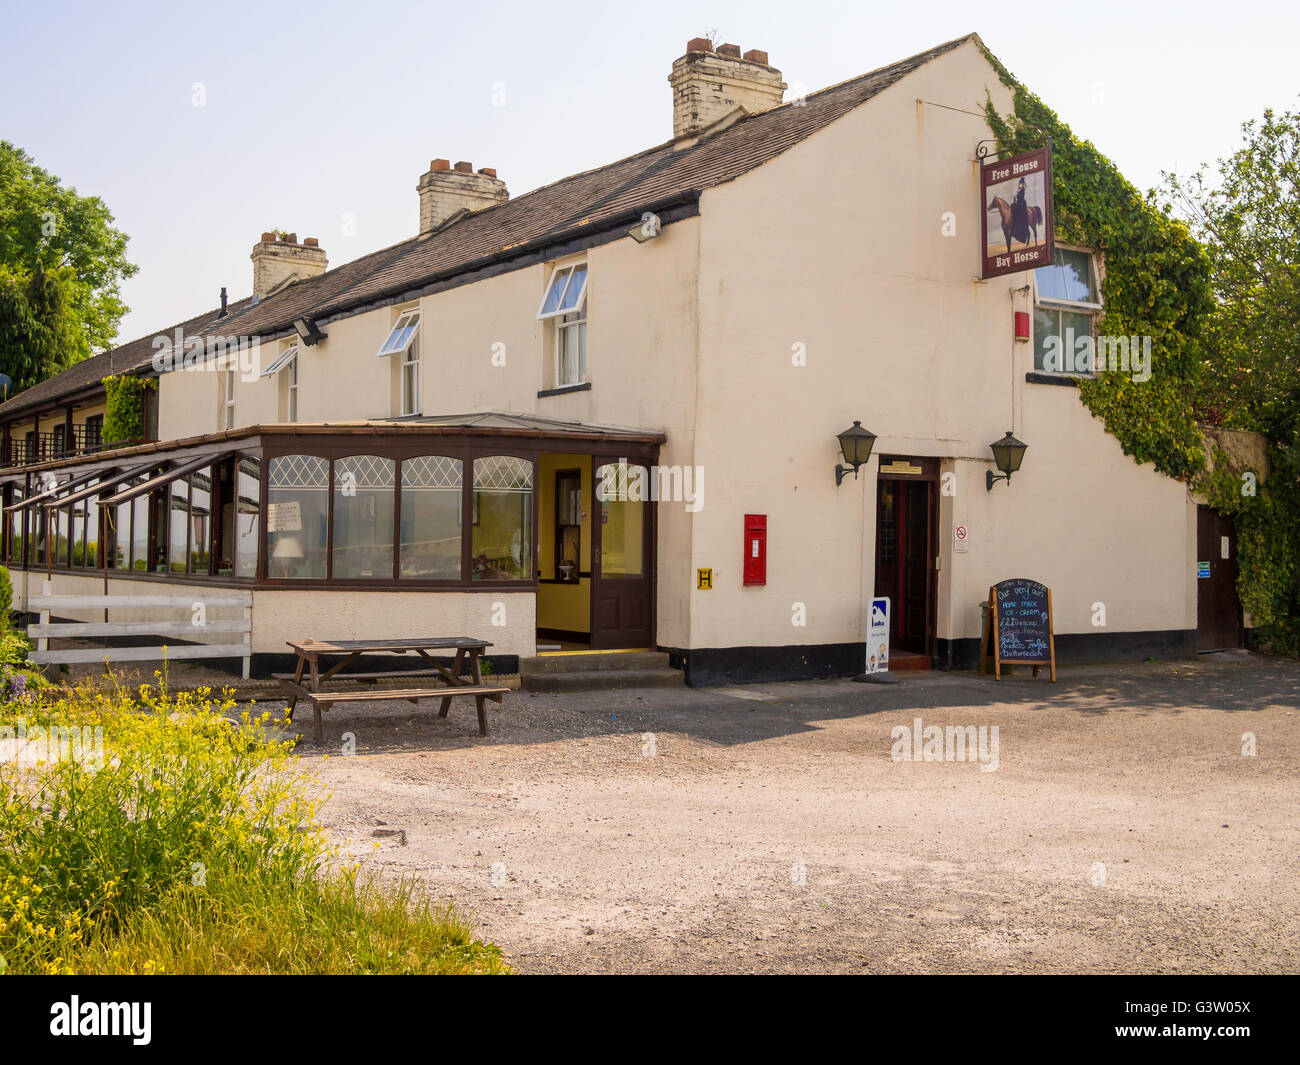 The Bay Horse Pub and Veranda restaurant at Canal Foot  Ulverston Cumbria England UK - Stock Image